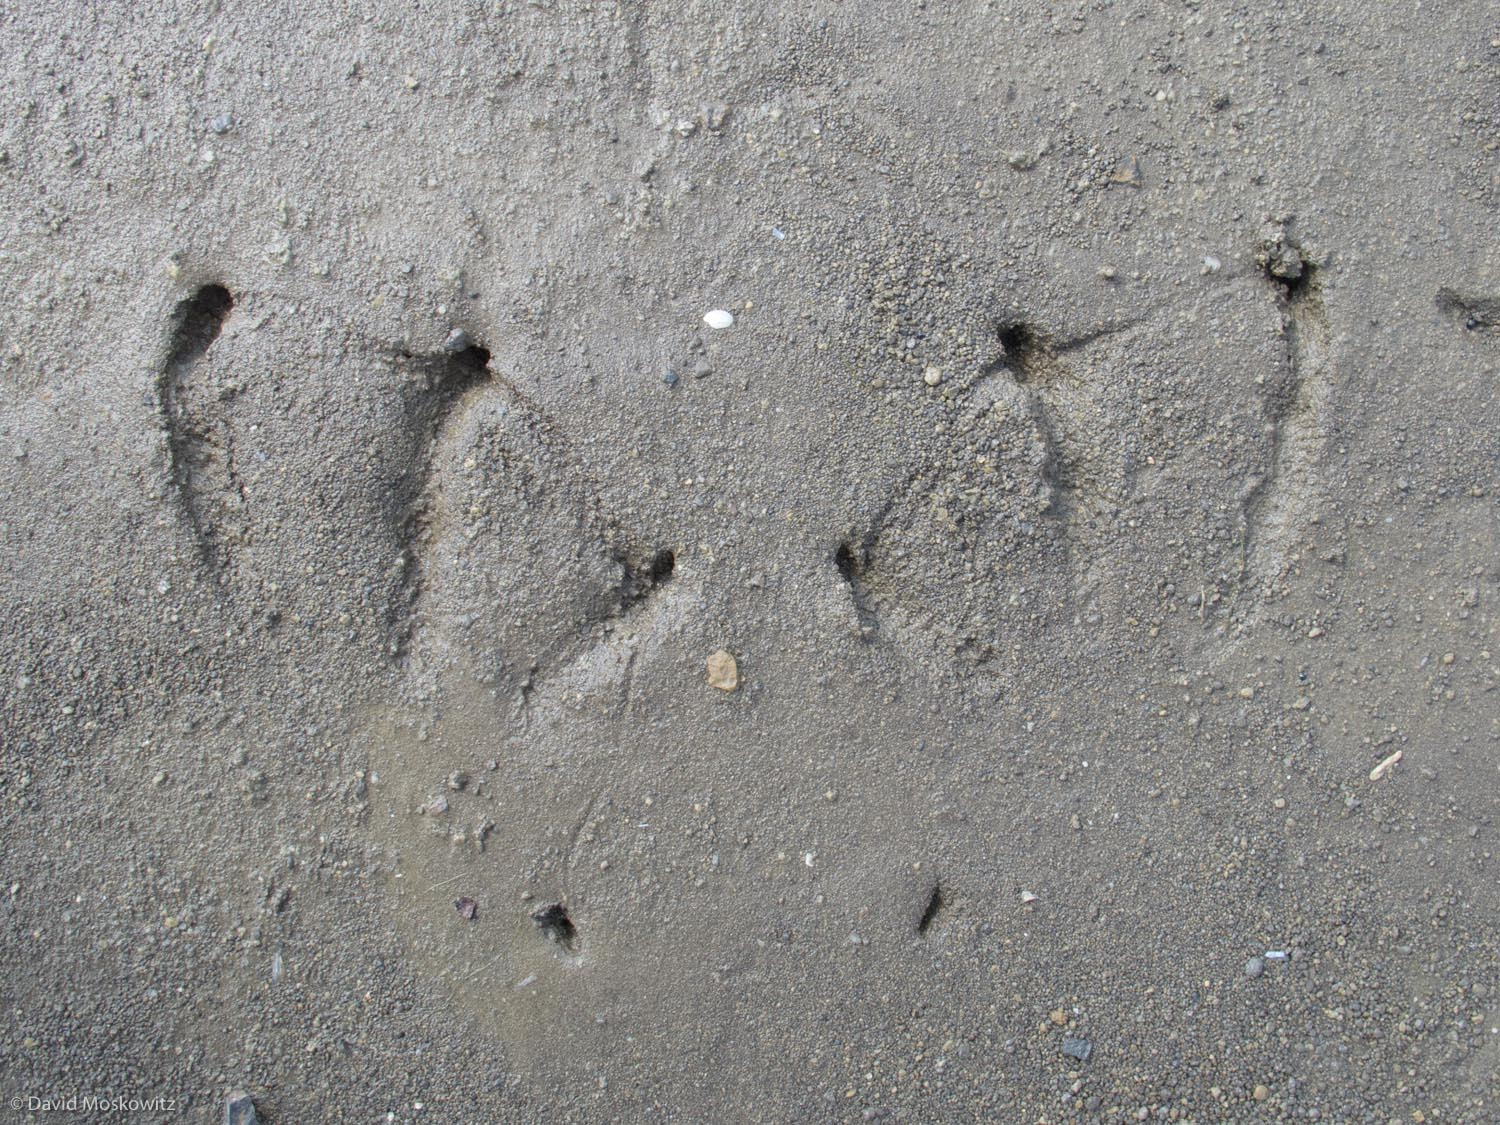 Tracks of a Great cormorant from the shore of a reservoir in the Liptovsky region of Slovakia.